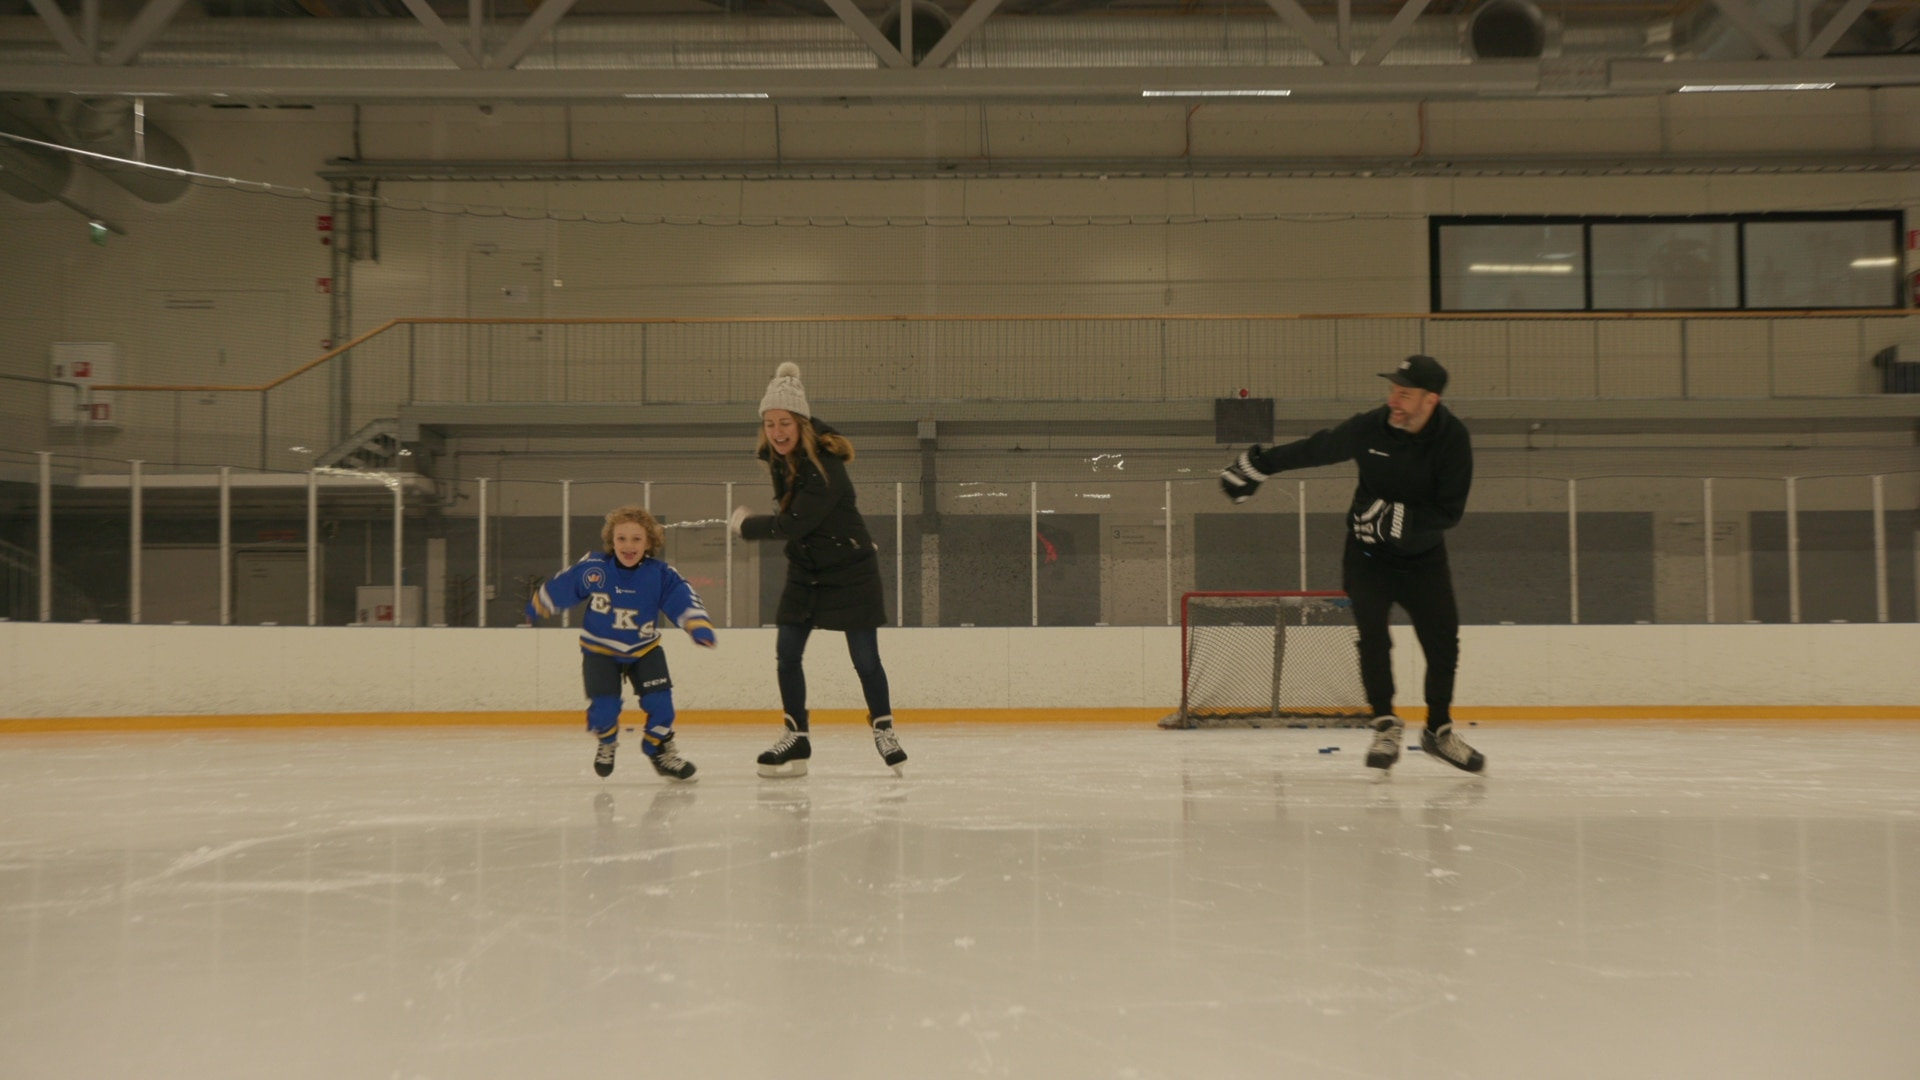 Melissa Georgiou with her husband, Makke, and her son, Milo, have a Finnish hobby - ice skating.